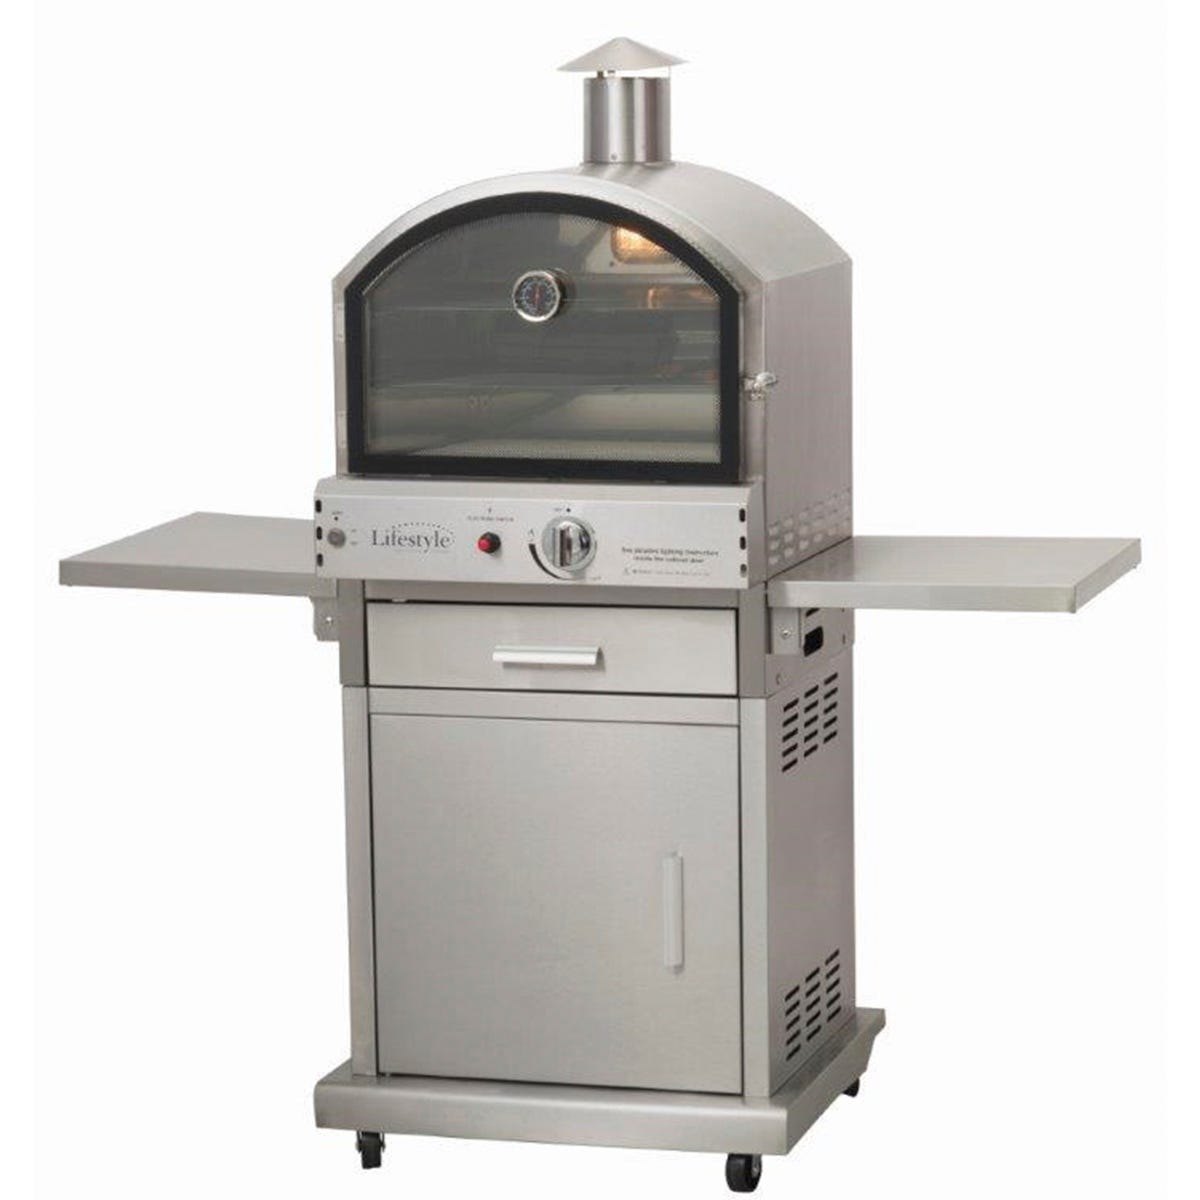 Lifestyle Appliances Milano Deluxe Stainless Steel Gas Garden Pizza Oven